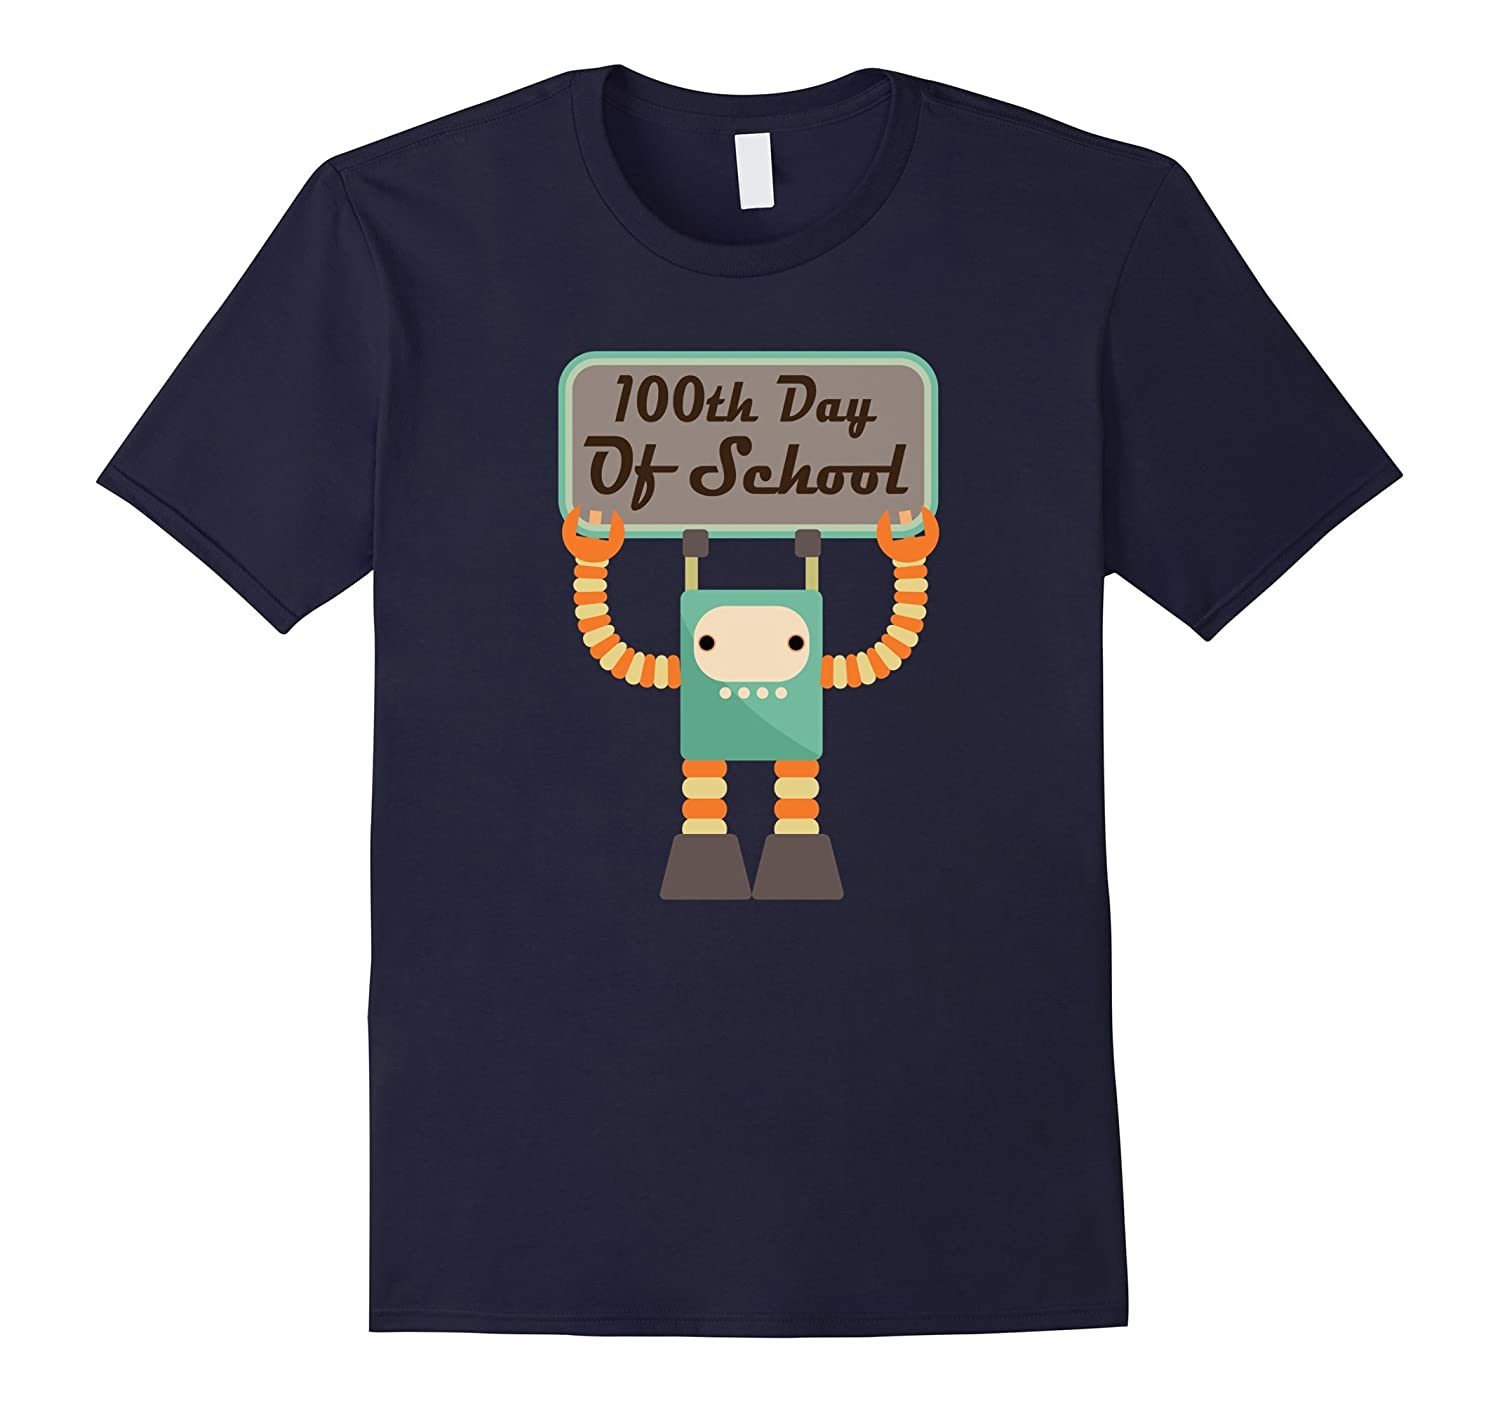 100th Day Of School 100 Days Party T-shirt Student Teacher-Art